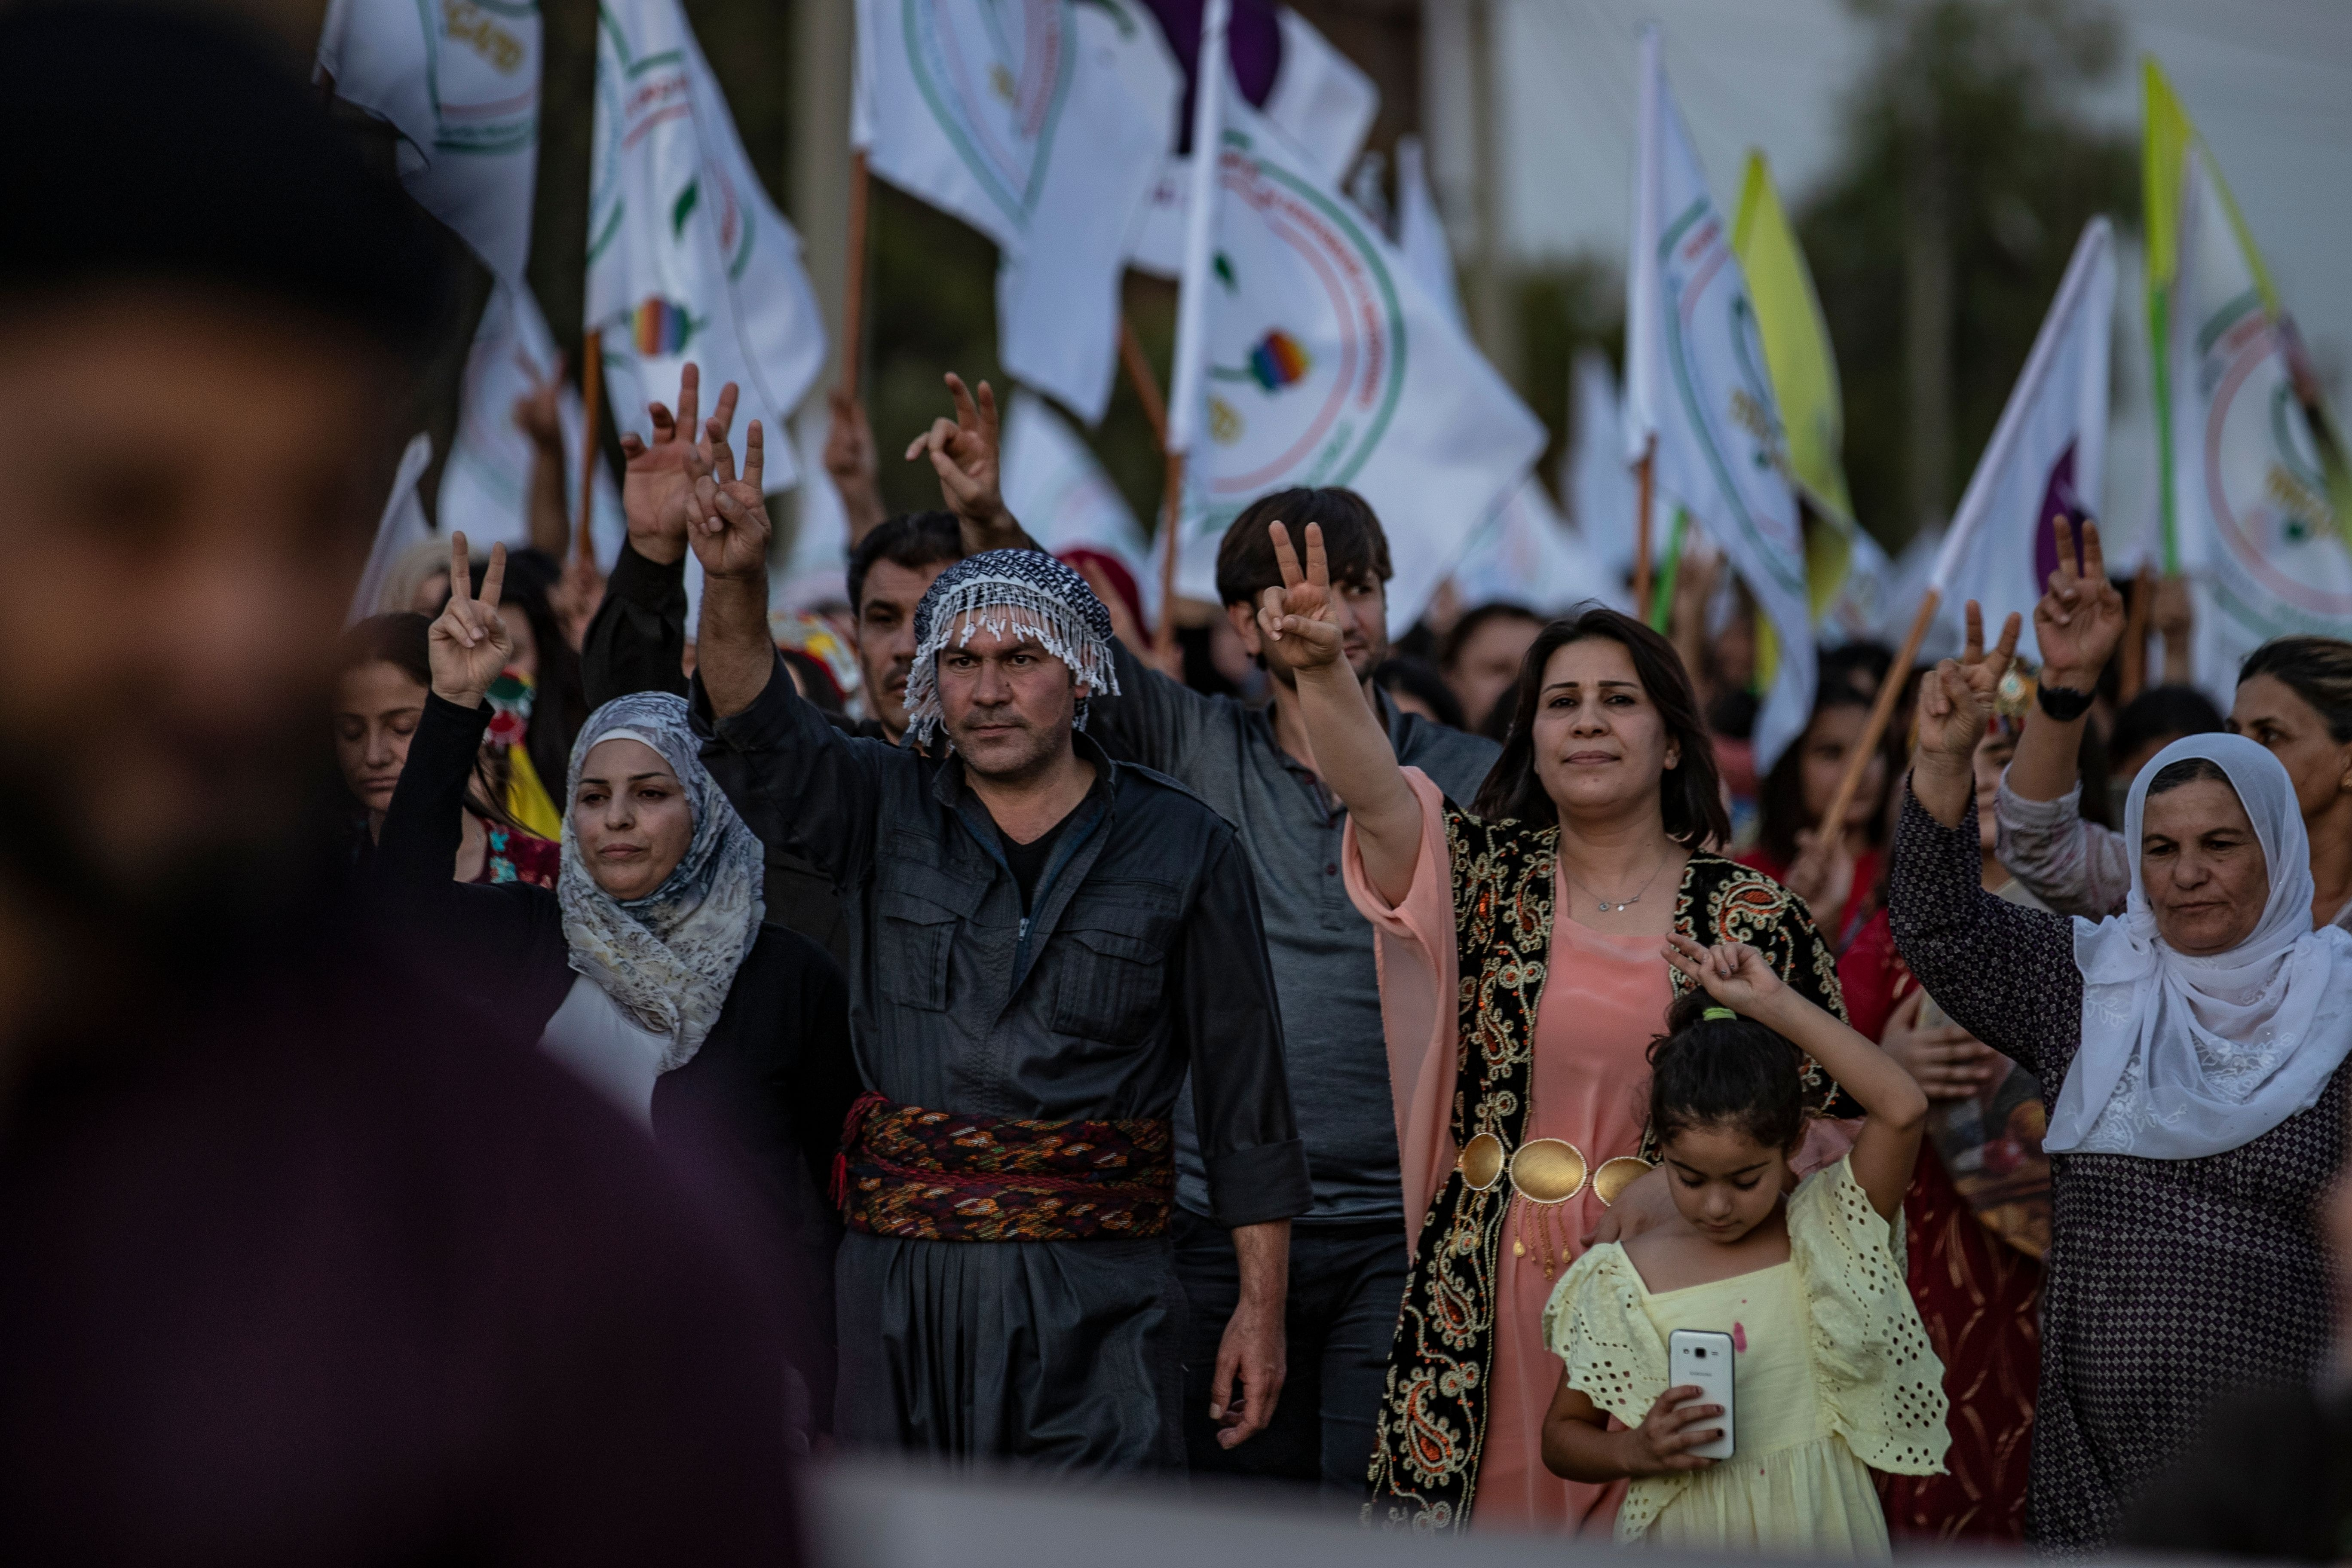 Syrian Kurdish demonstrators flash the V for victory sign as they march in the northeastern city of Qamishli on August 27, 2019 during a protest against Turkish threats to invade the Kurdish region. - The Kurdish authorities in northeast Syria said Tuesday their forces had started to withdraw from outposts along the Turkish border after a US-Turkish deal for a buffer zone there. (Photo by Delil SOULEIMAN / AFP)